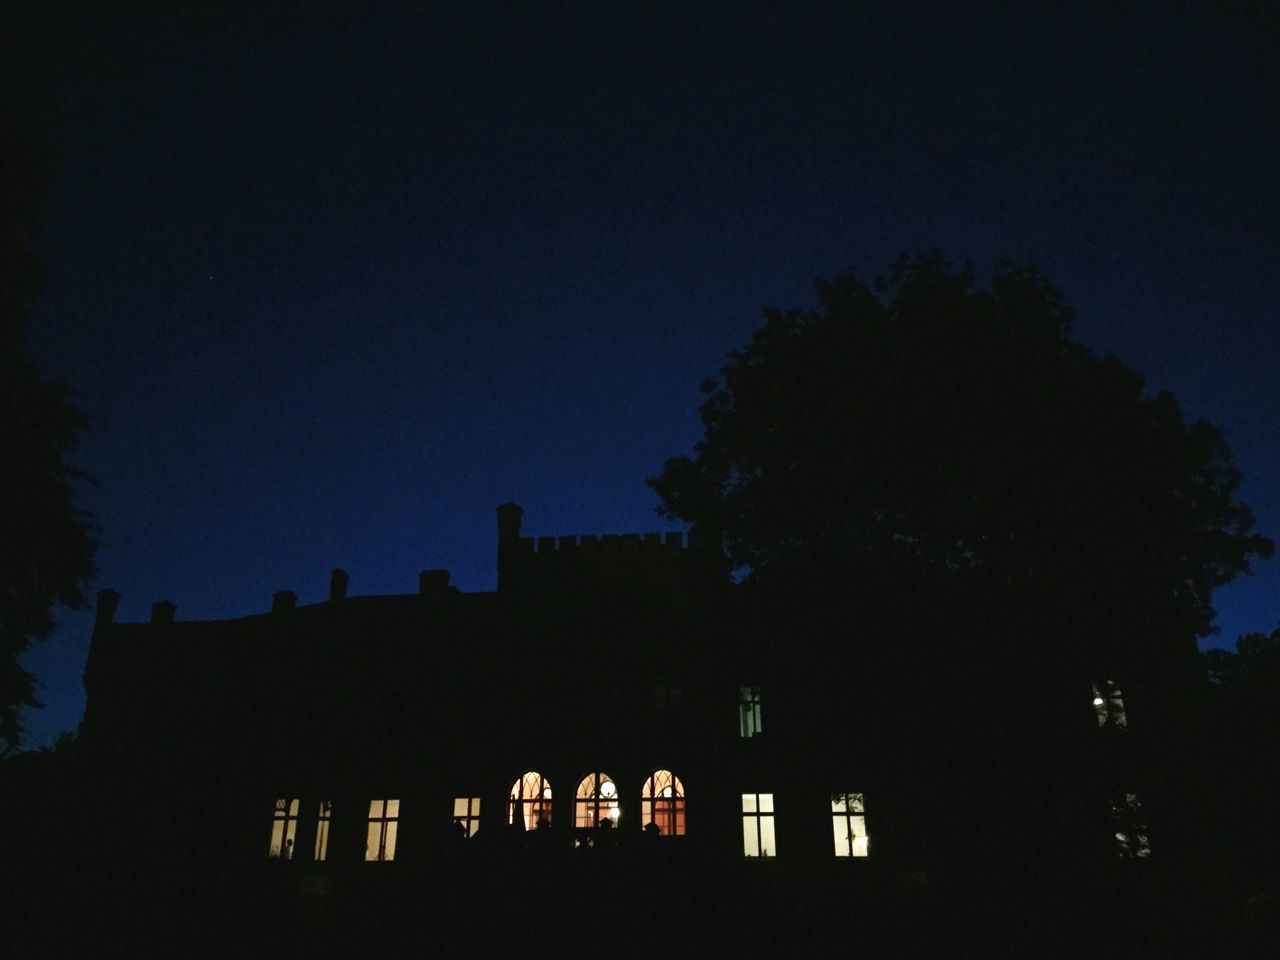 tree, silhouette, architecture, night, built structure, building exterior, low angle view, illuminated, no people, clear sky, outdoors, sky, blue, city, nature